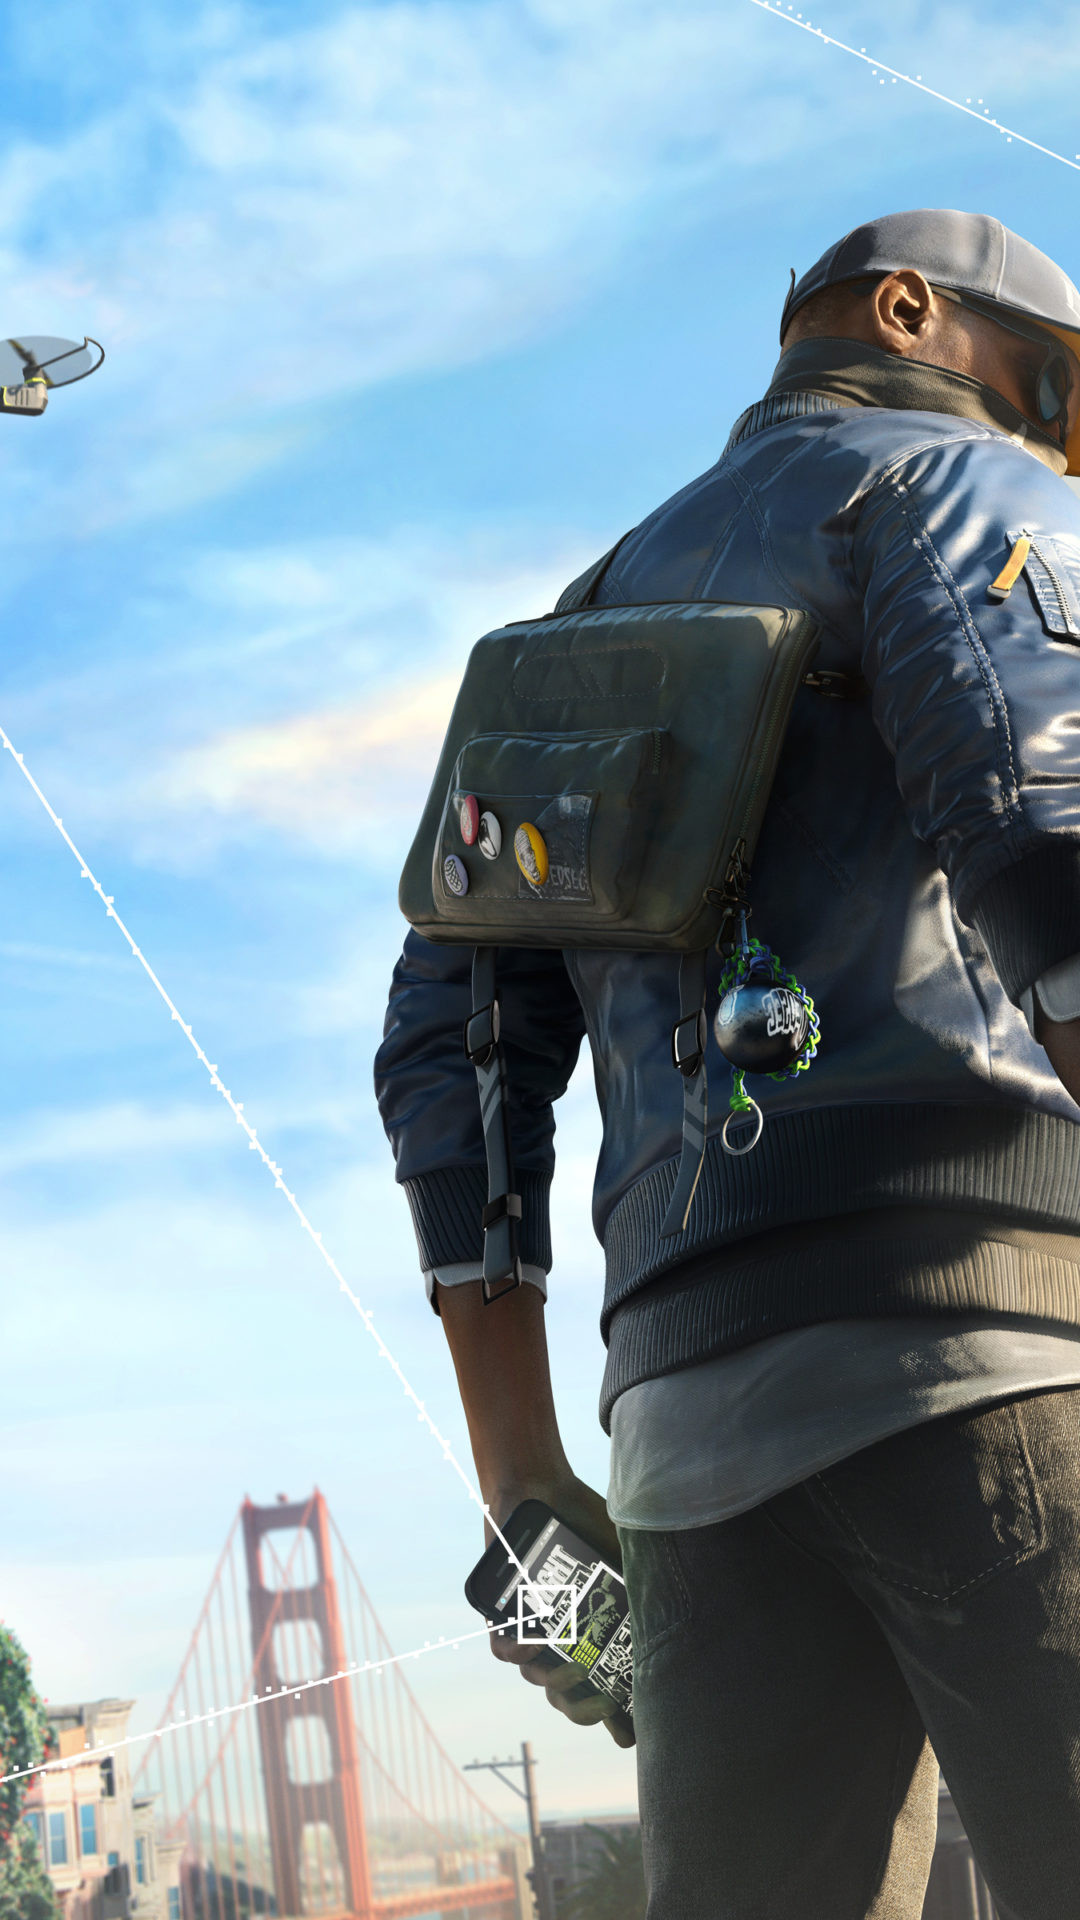 hmTioT watch dogs 2 wallpaper iphone watch dogs 2